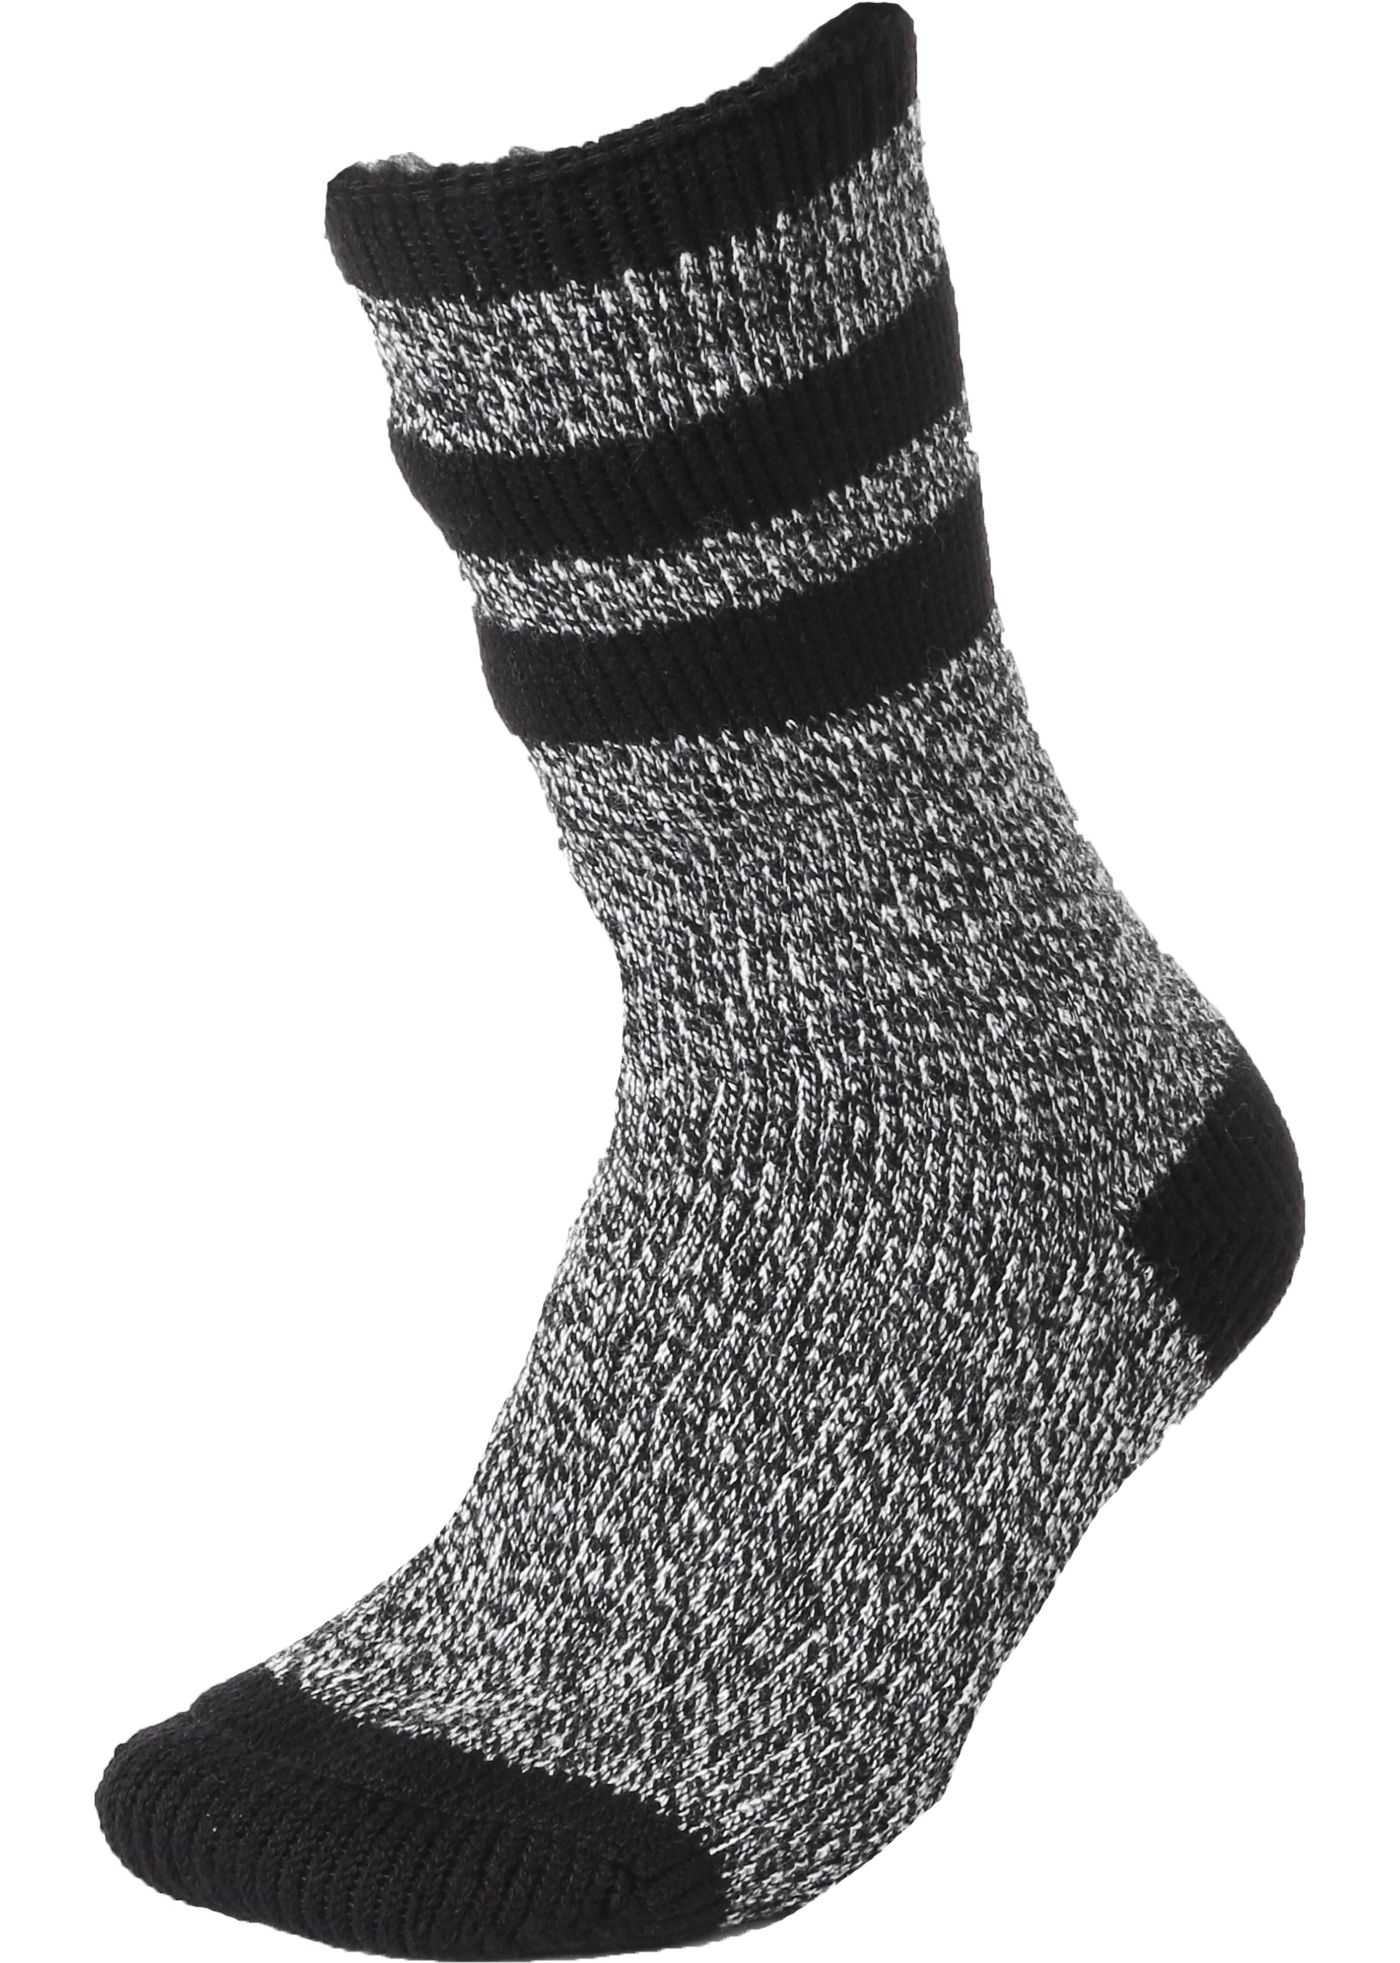 Field & Stream Thermal Heavyweight Brushed Stripe Over the Calf Socks